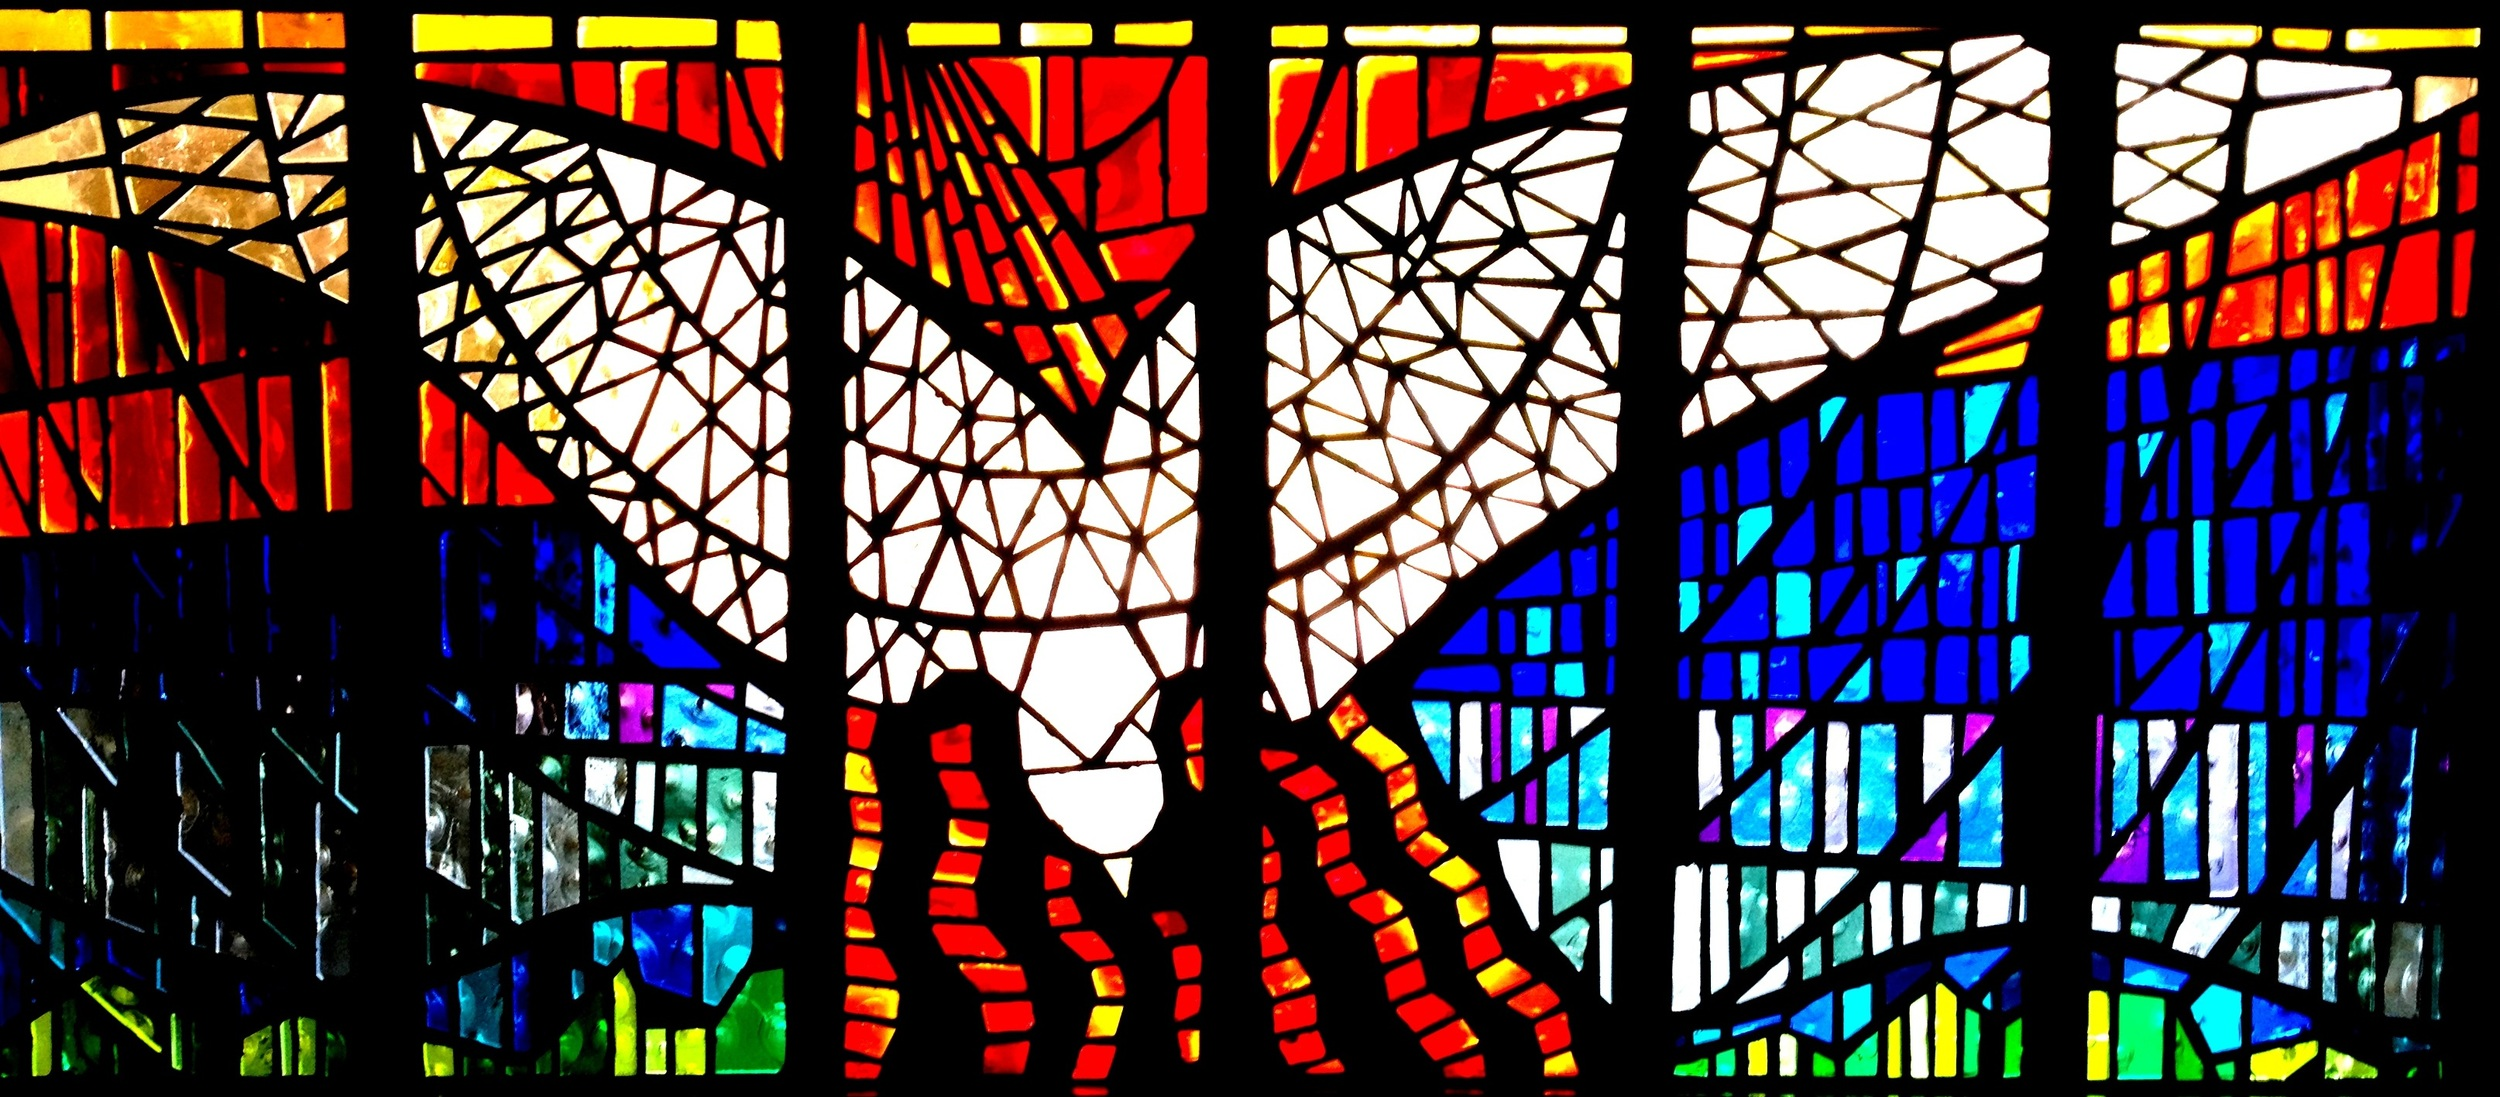 Holy Spirit dove stained glass with the vibrant colors: red, blue, yellow, green, and white.